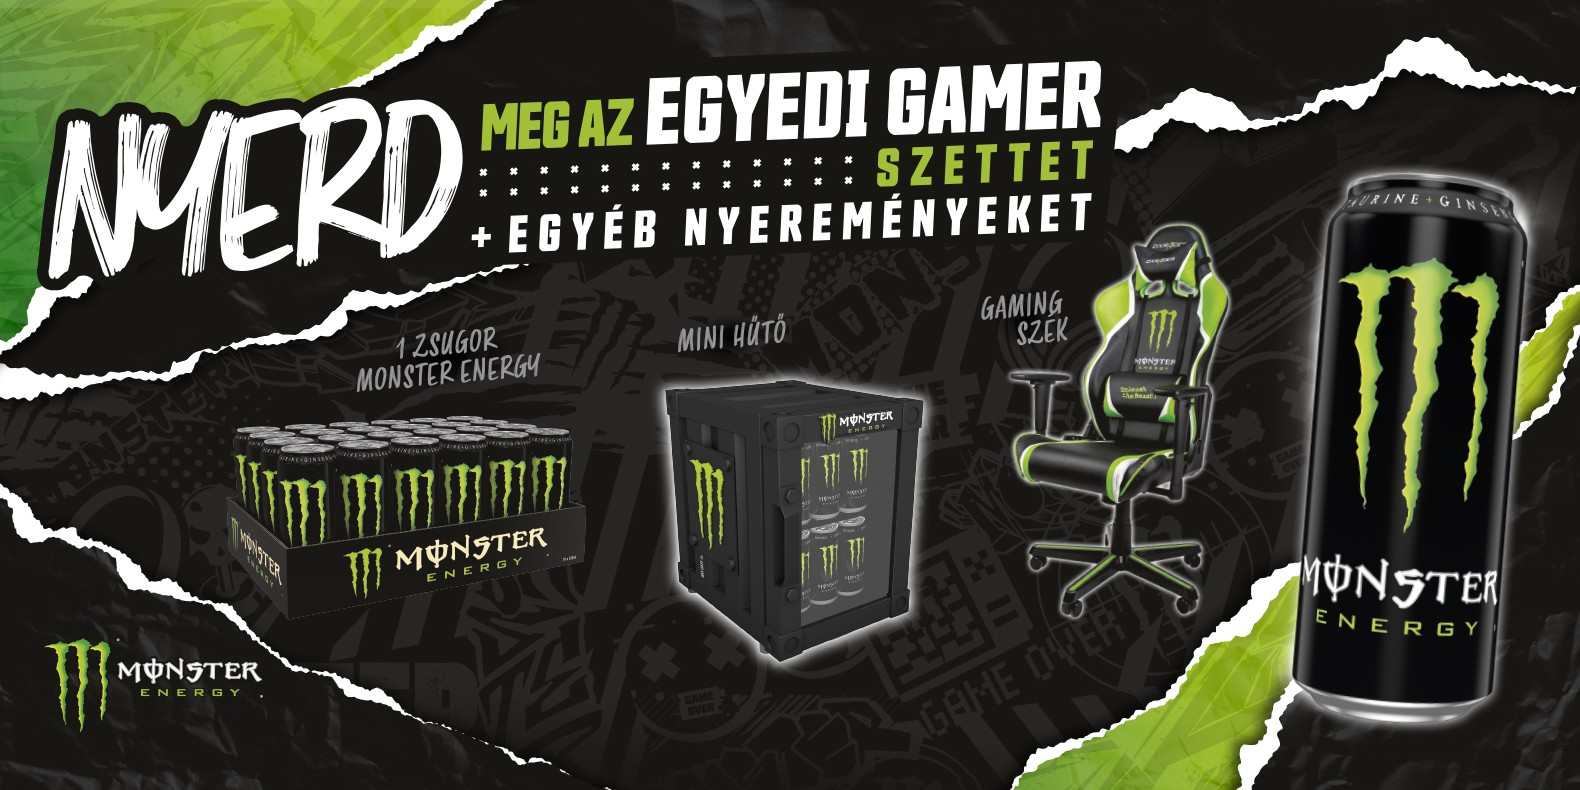 Website artwork for Q2 gaming promotion in Hungary - The ultimate home gaming setup